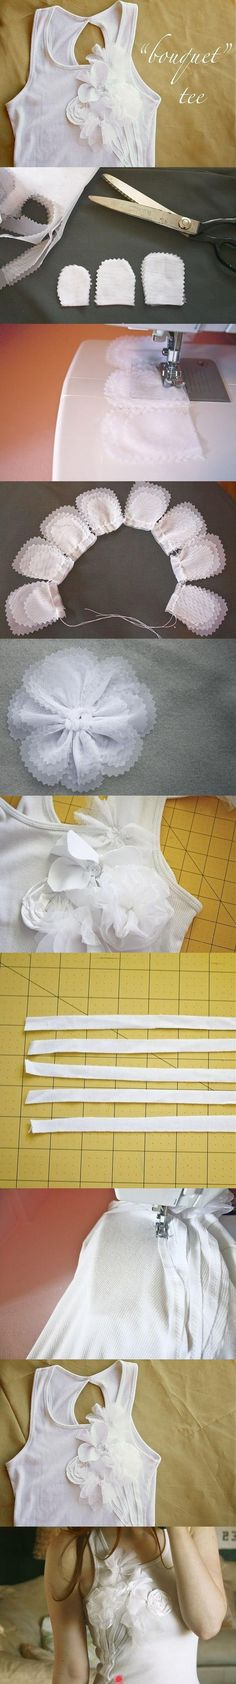 DIY Tee Shirt Pictures, Photos, and Images for Facebook, Tumblr, Pinterest, and Twitter